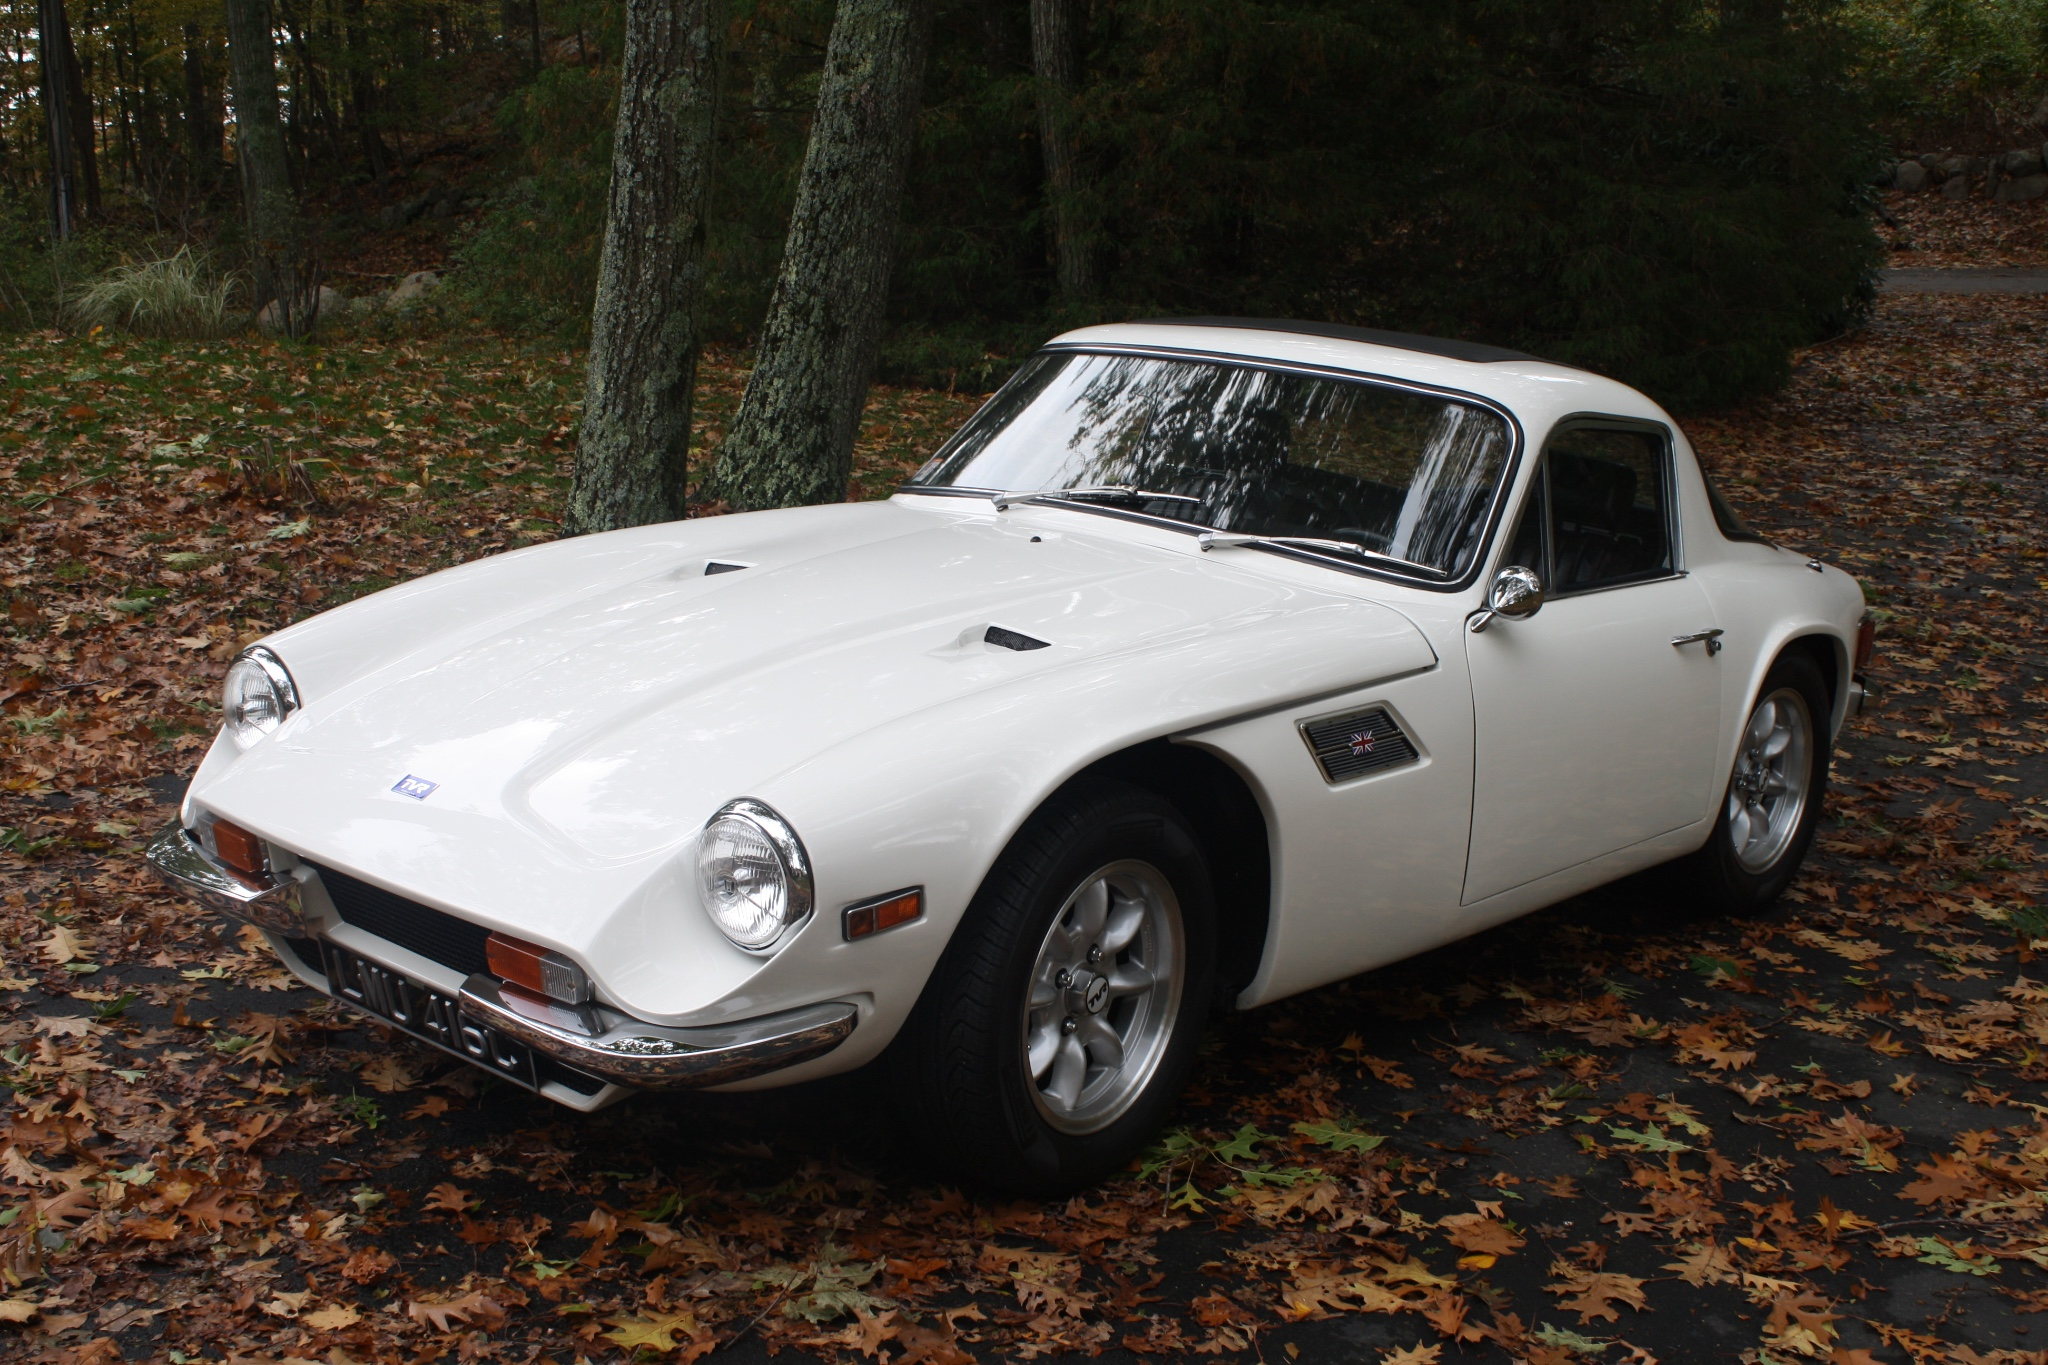 The TVR 2500M looks very similar to the TVR Grantura of 1958. Yet the design does not look dated.